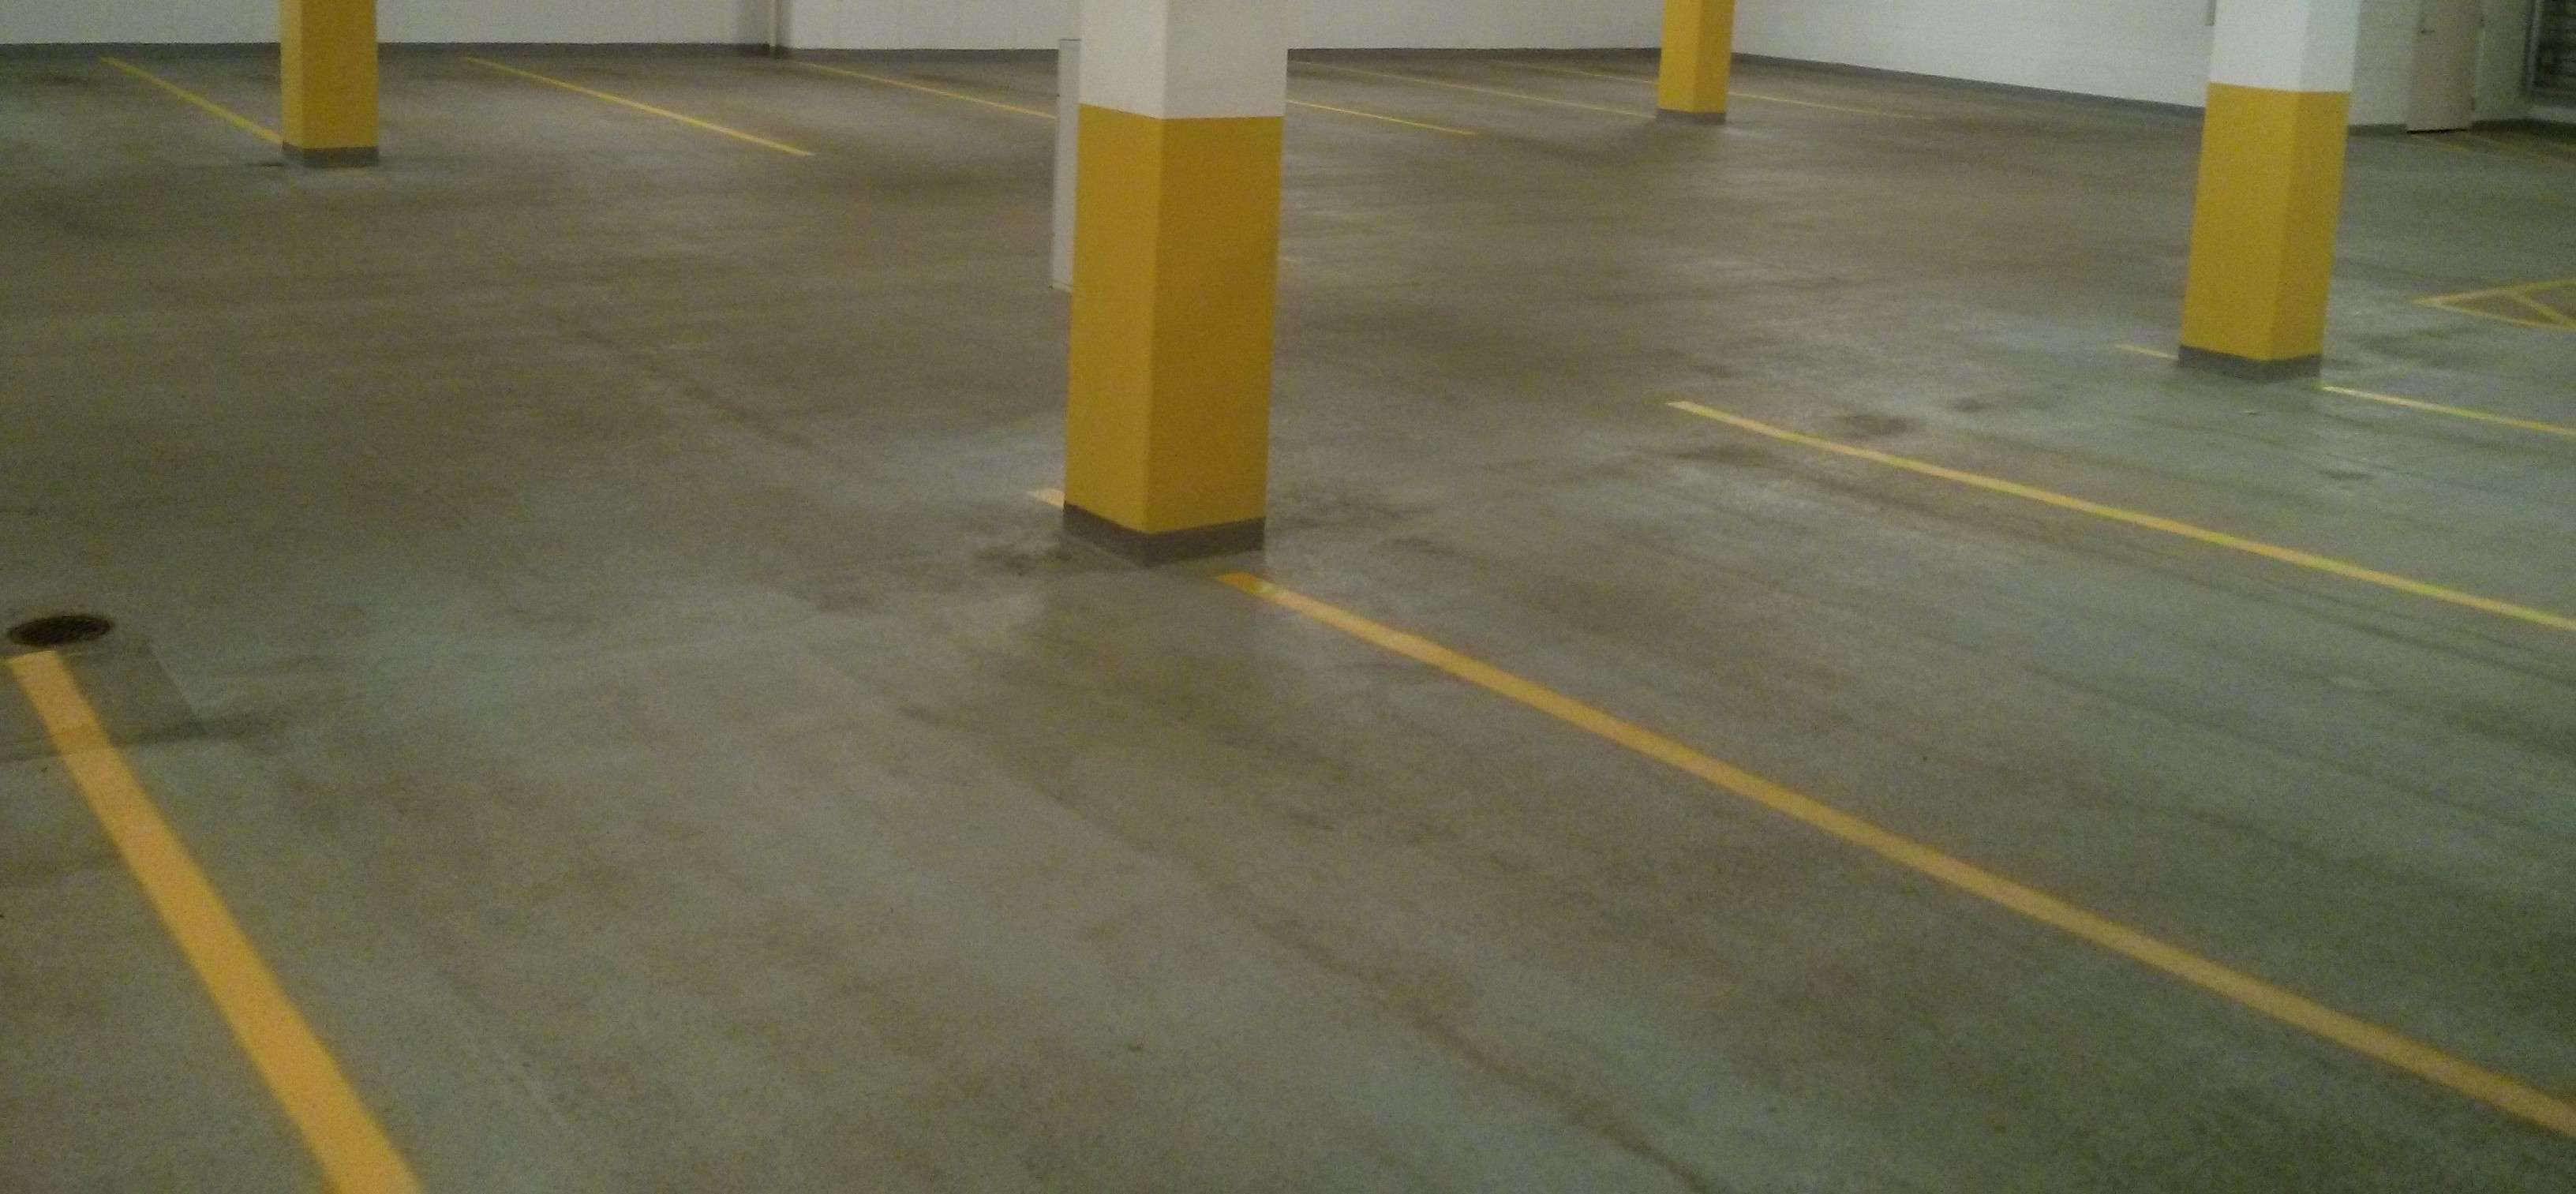 Parking garage concrete floor cleaning services in for Garage floor maintenance